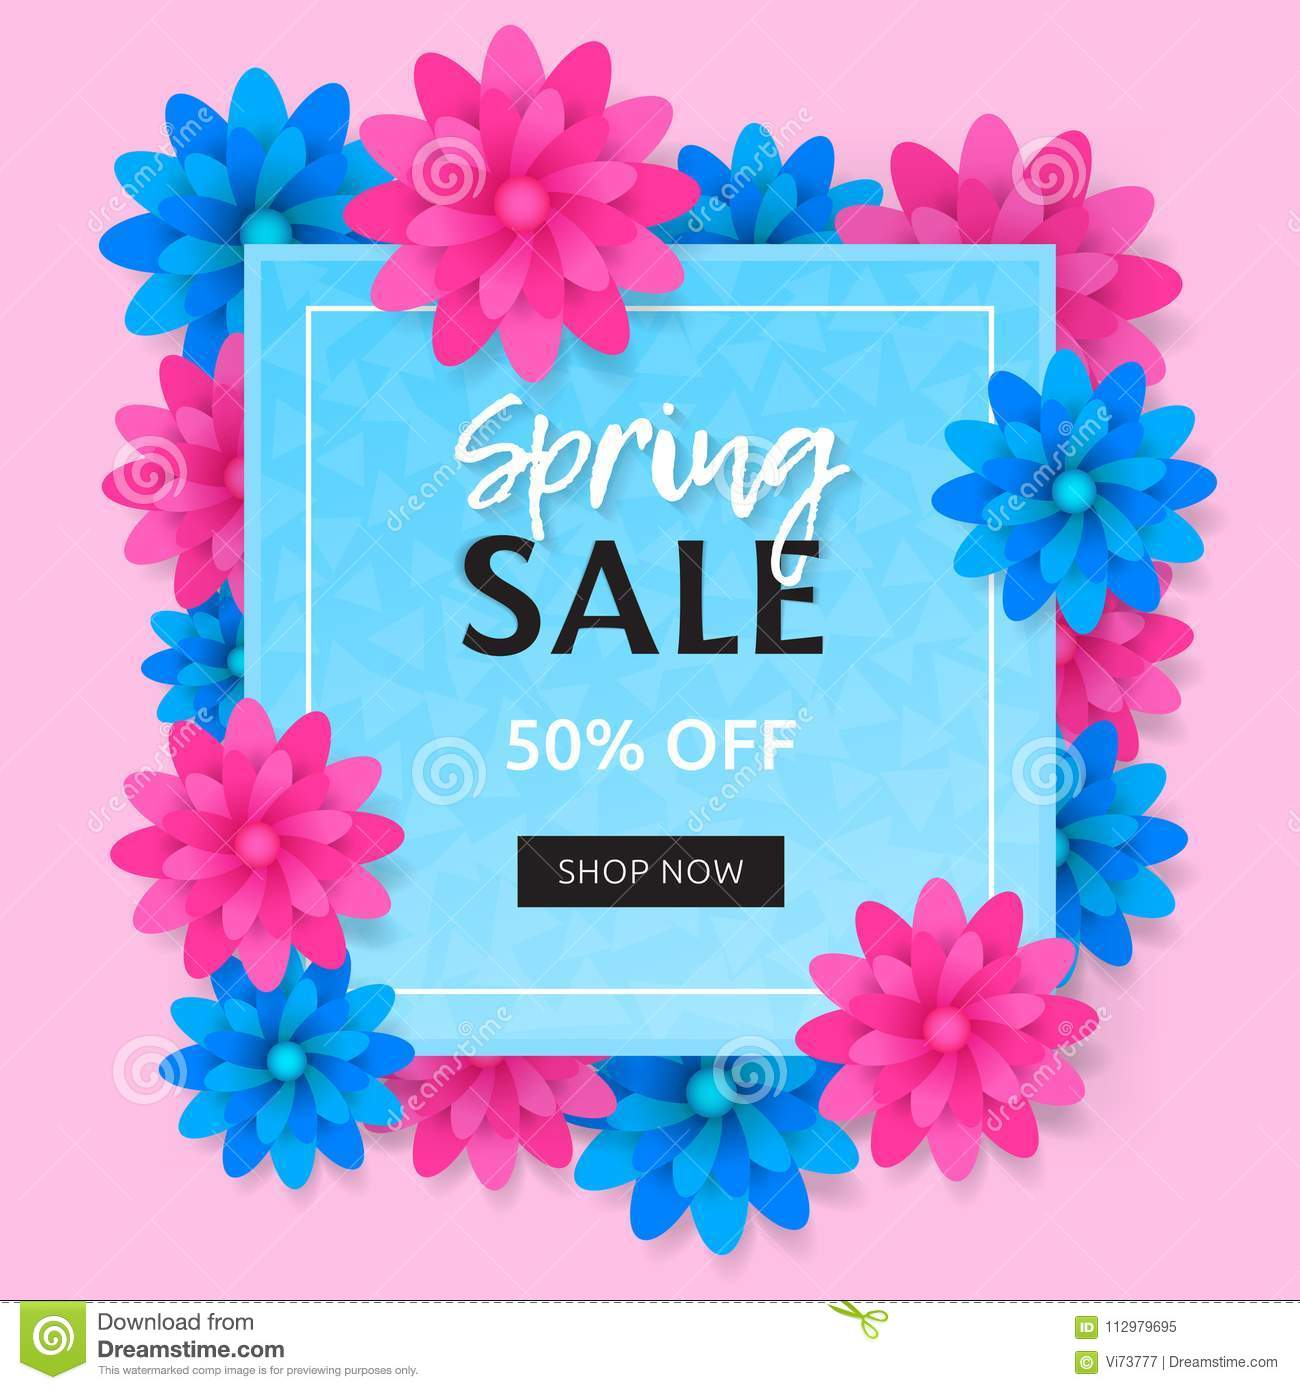 Spring sale banner with blue and pink flower. Trendy vector design of poster or discount card.